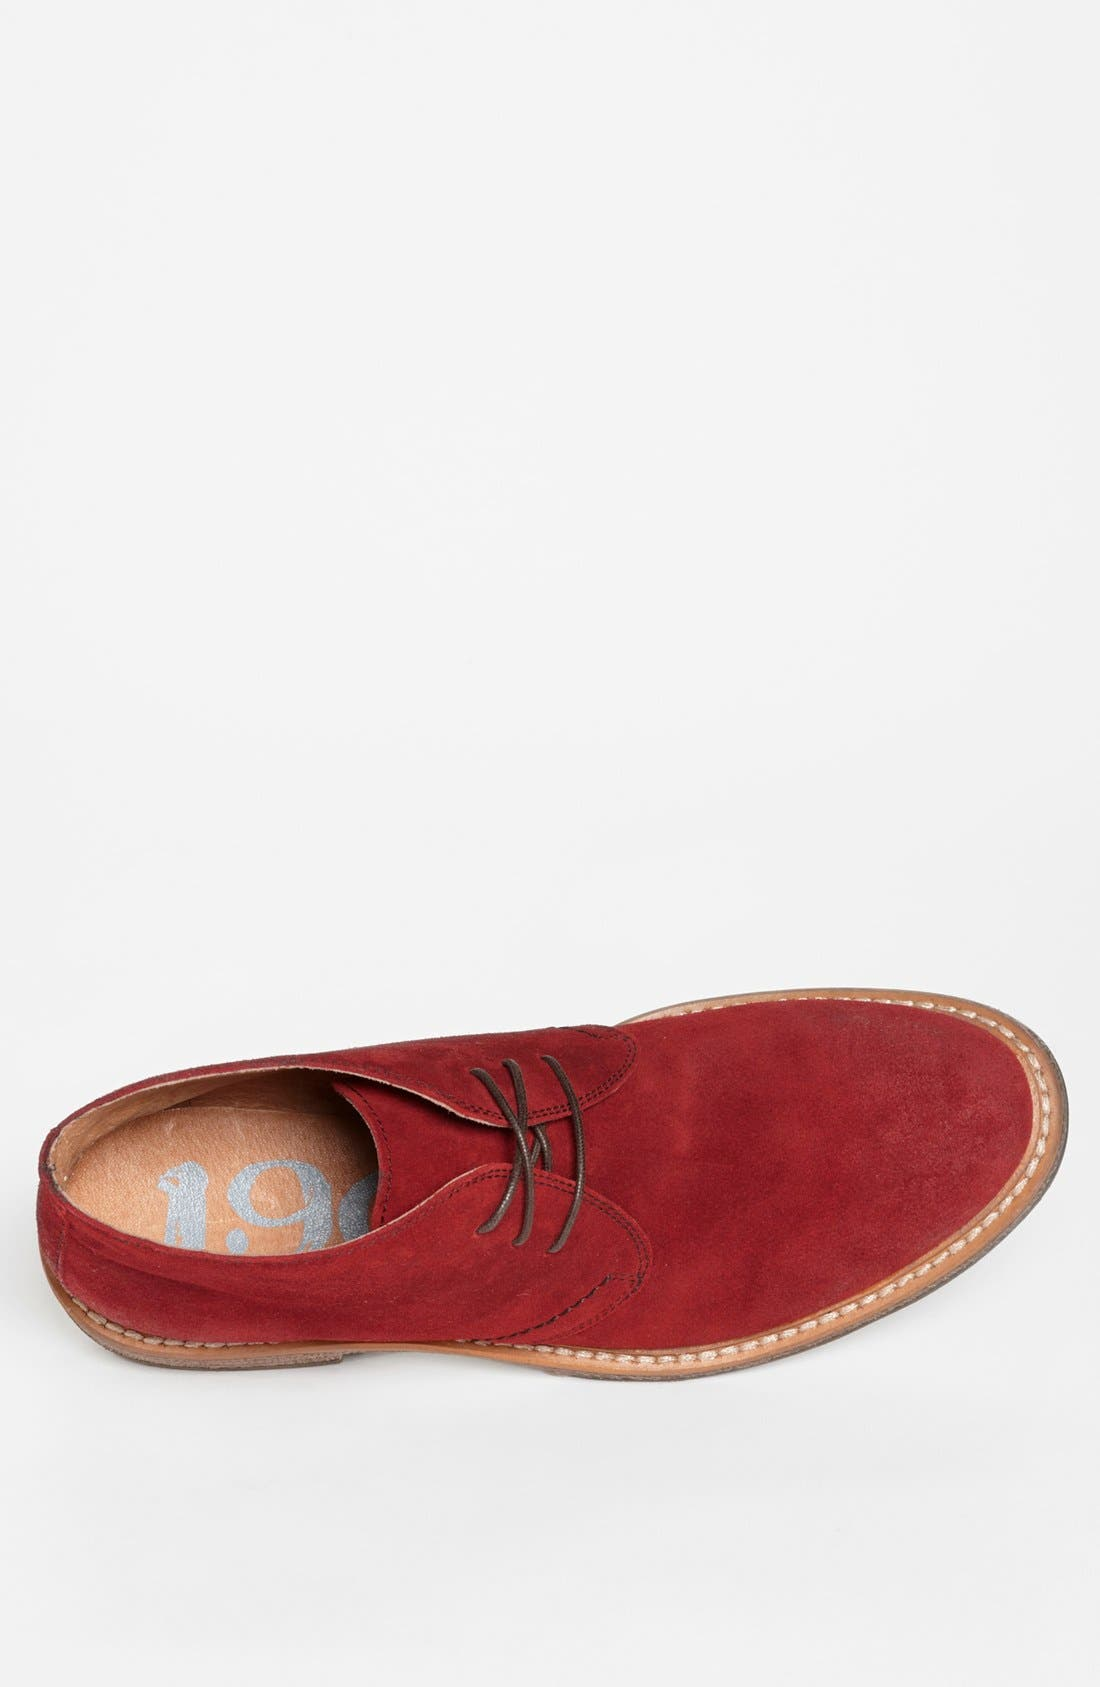 'Canyon' Chukka Boot,                             Alternate thumbnail 12, color,